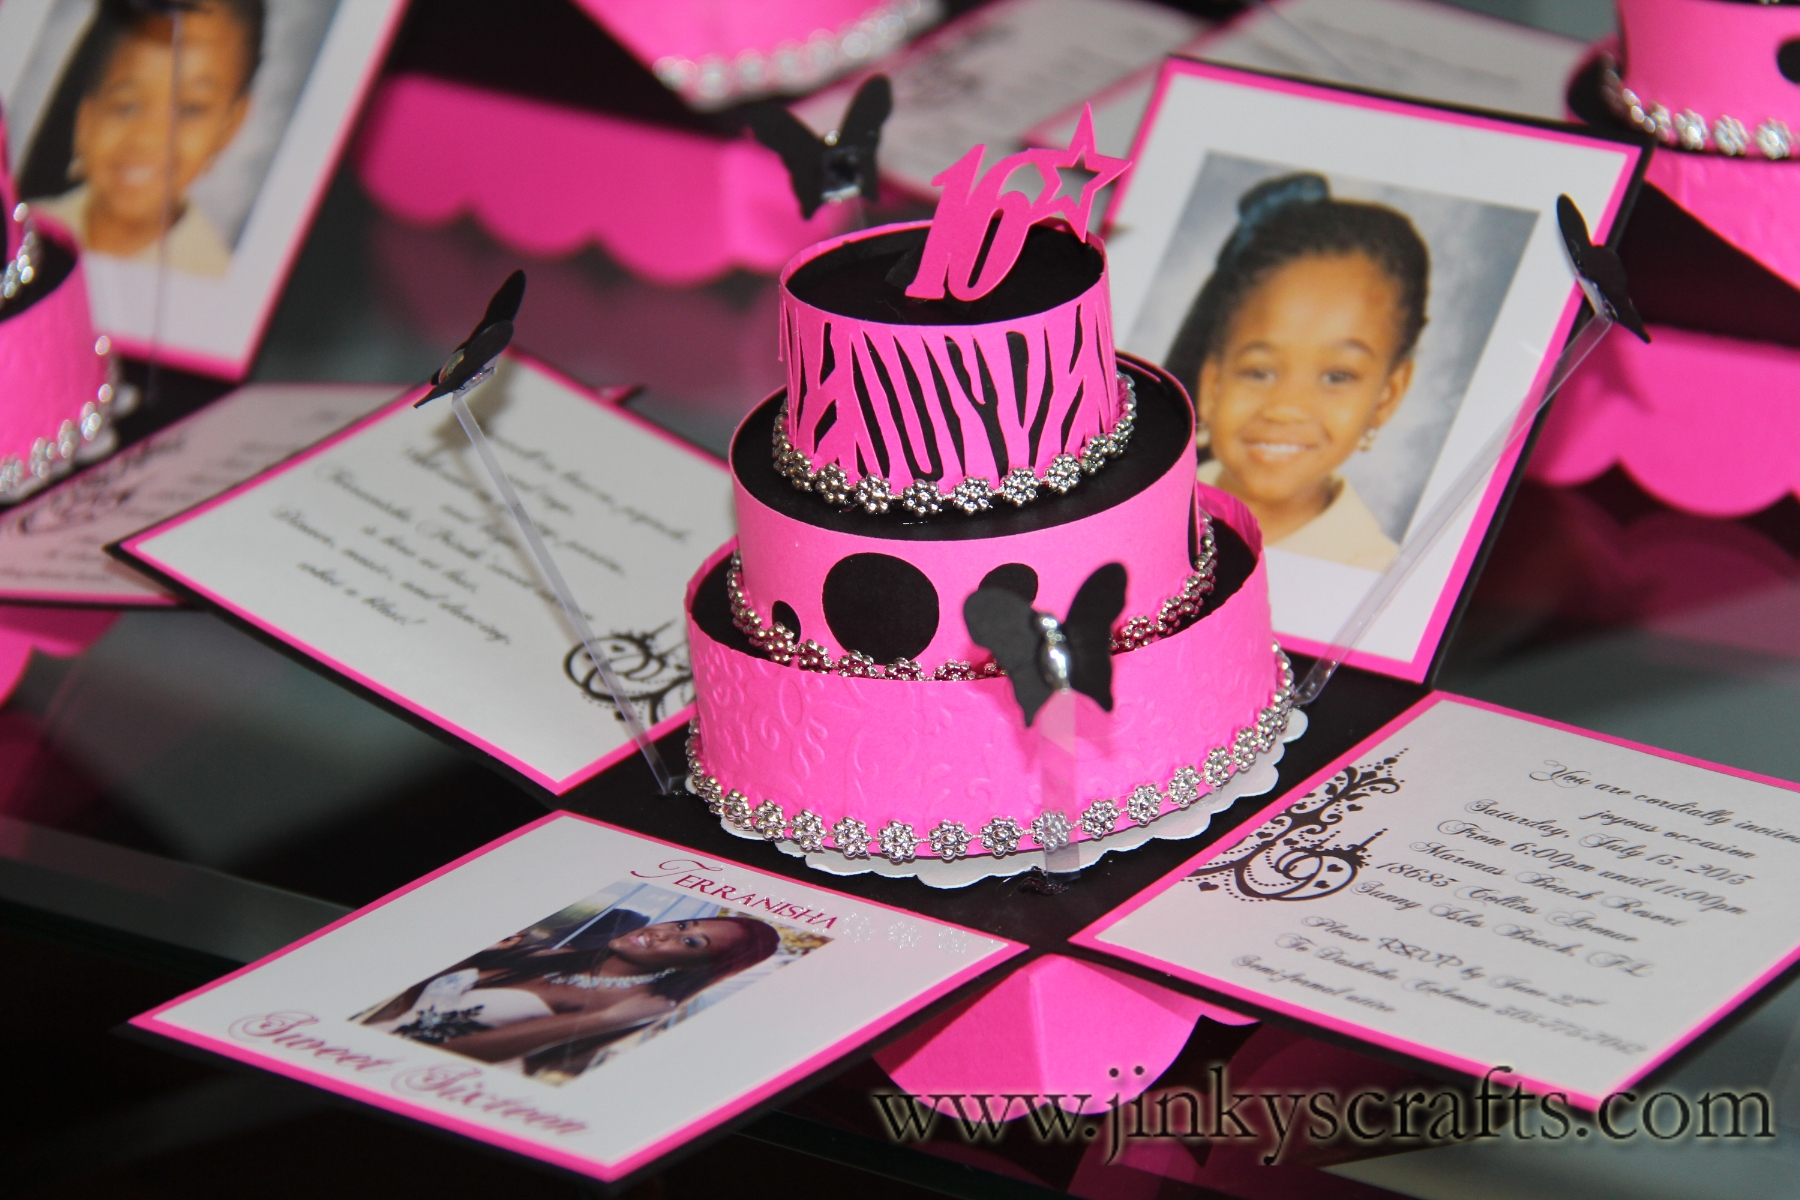 Zebra Print Exploding Box Invitations - Jinkys Crafts